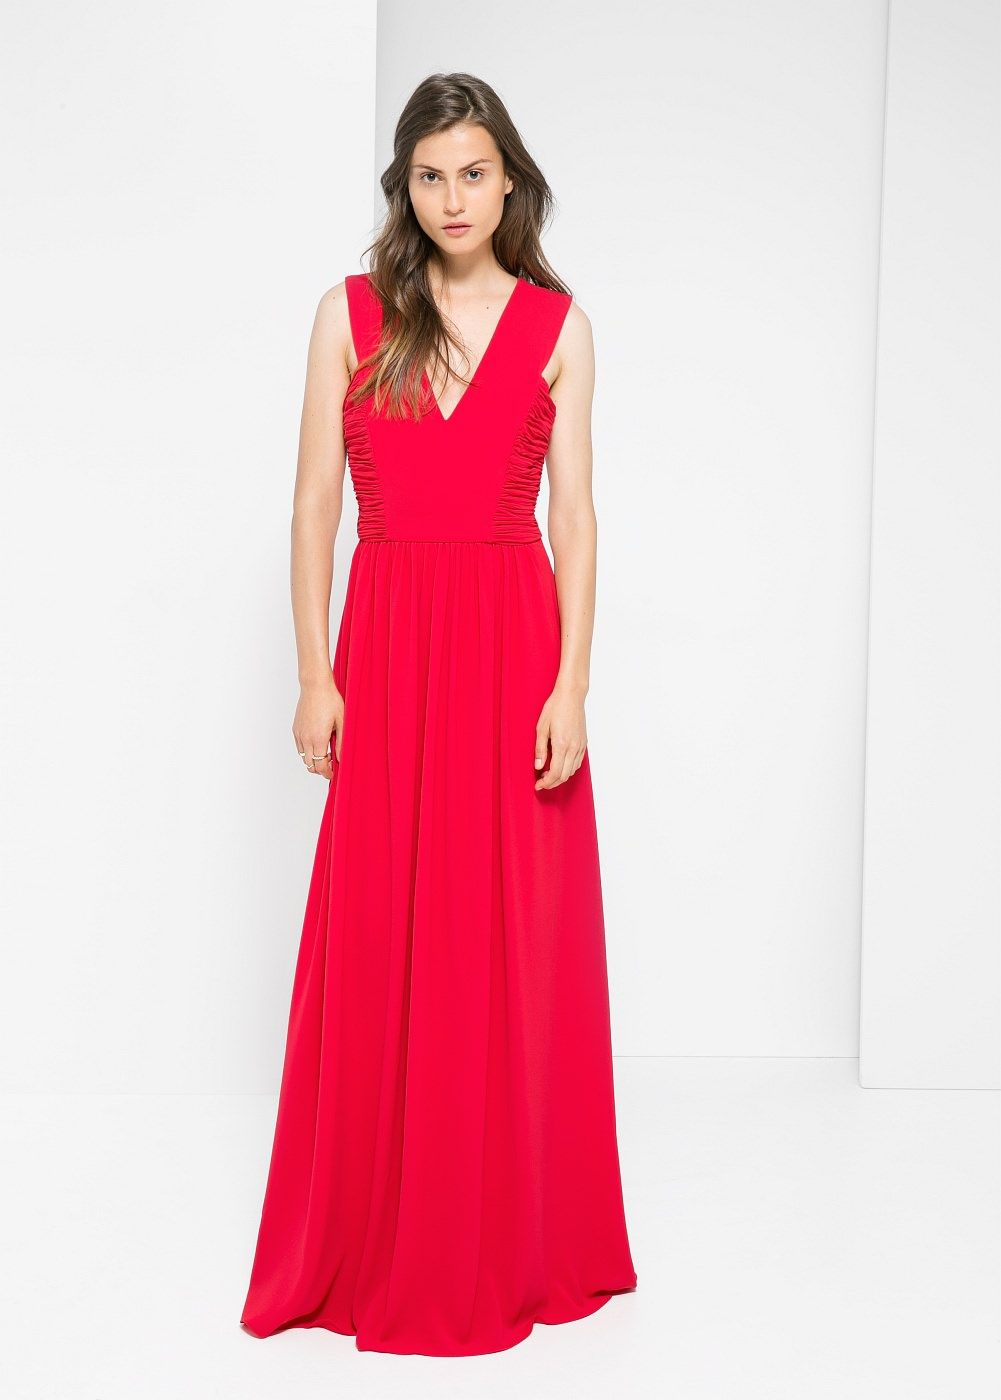 Long draped dress dress ideas gowns and clothing long draped dress ombrellifo Gallery